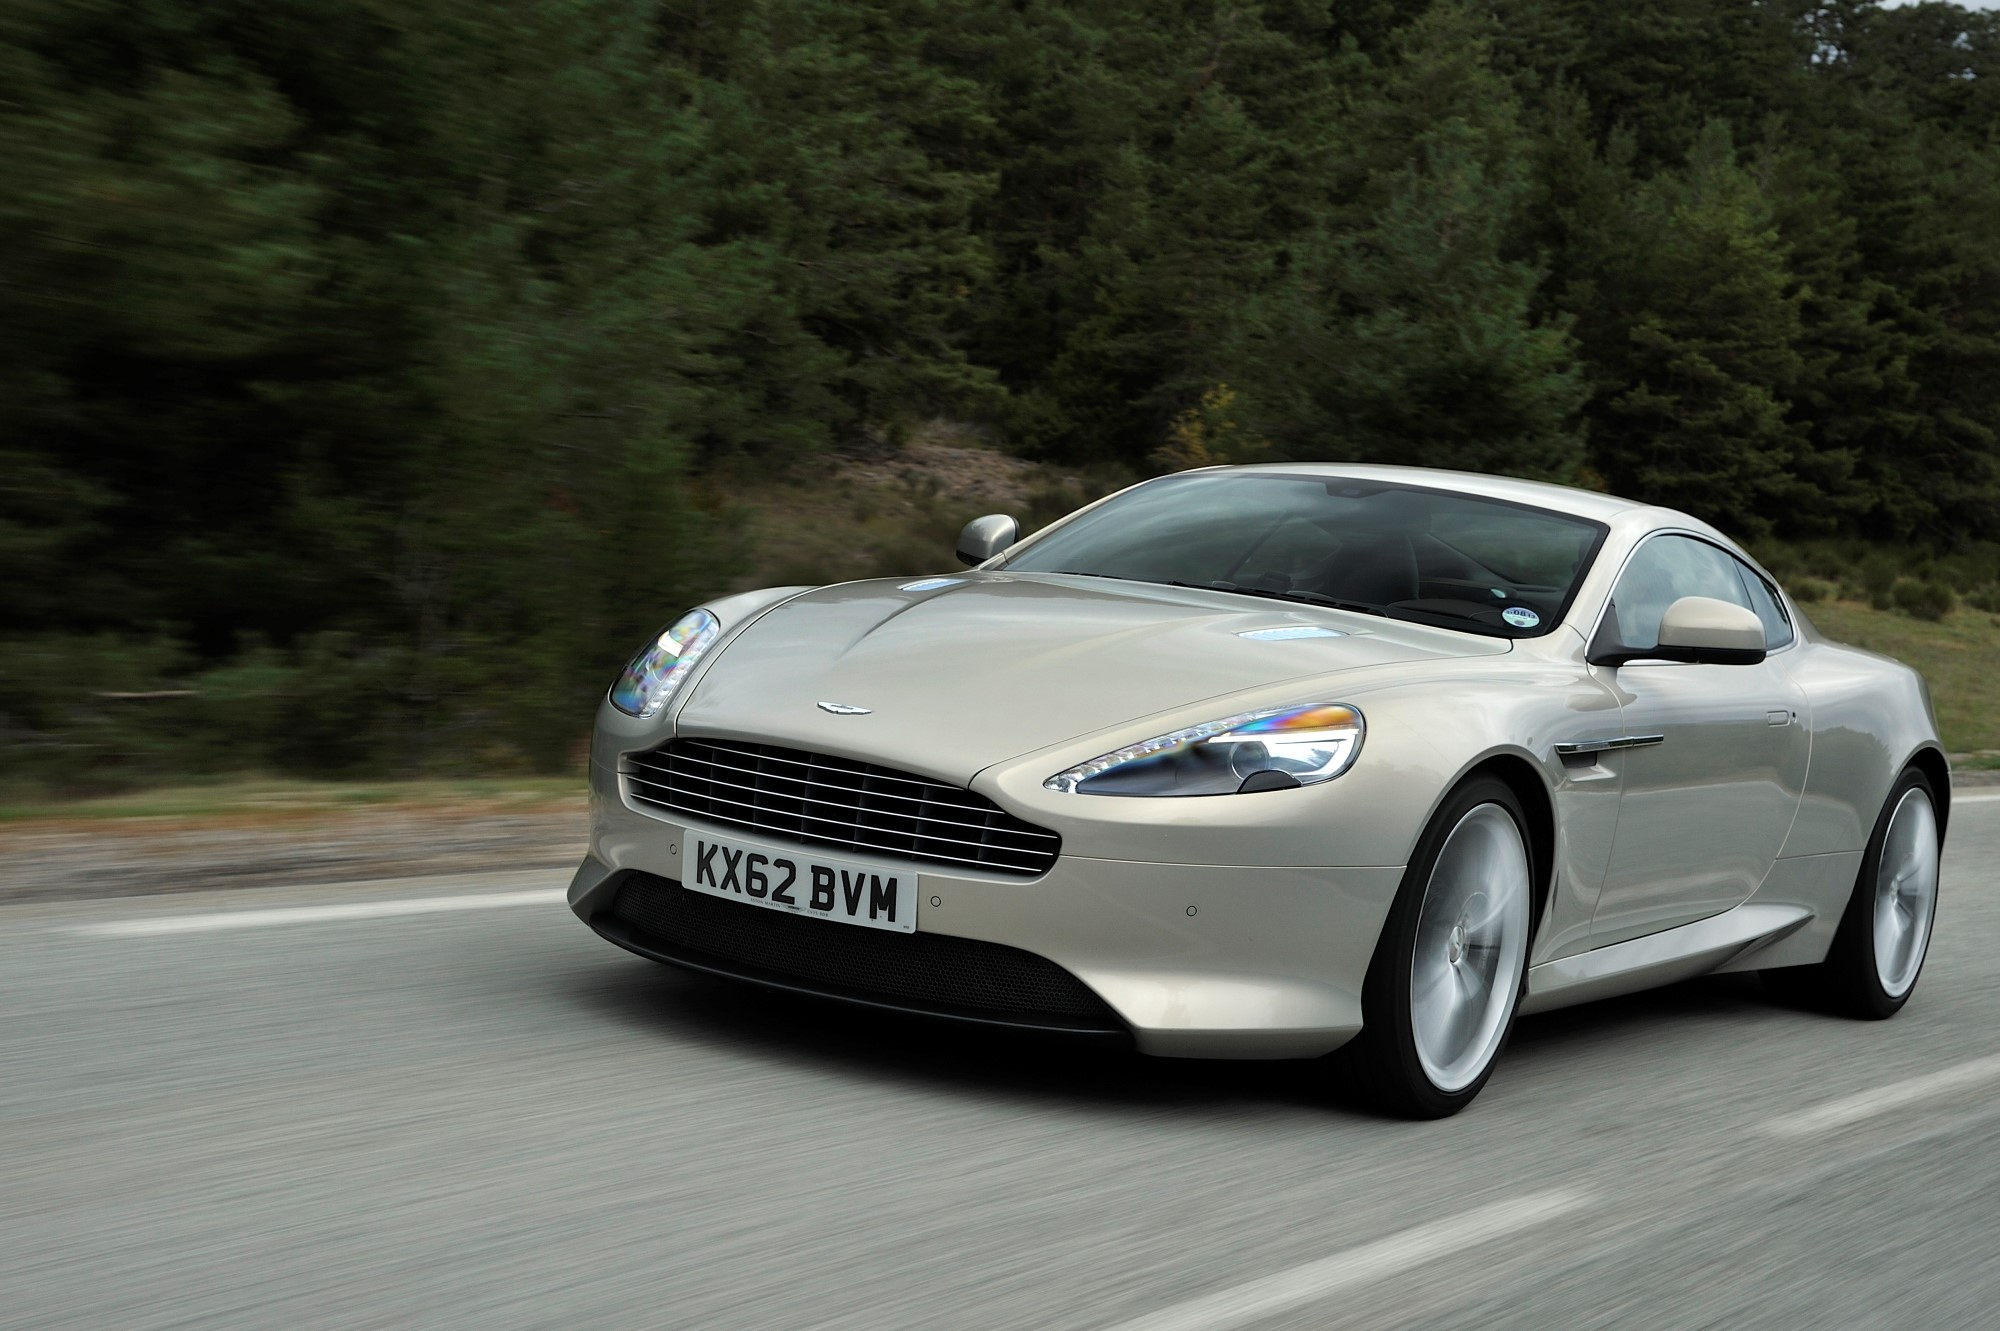 Bmw Of Fresno >> 2014 Aston Martin DB9 Review, Ratings, Specs, Prices, and ...